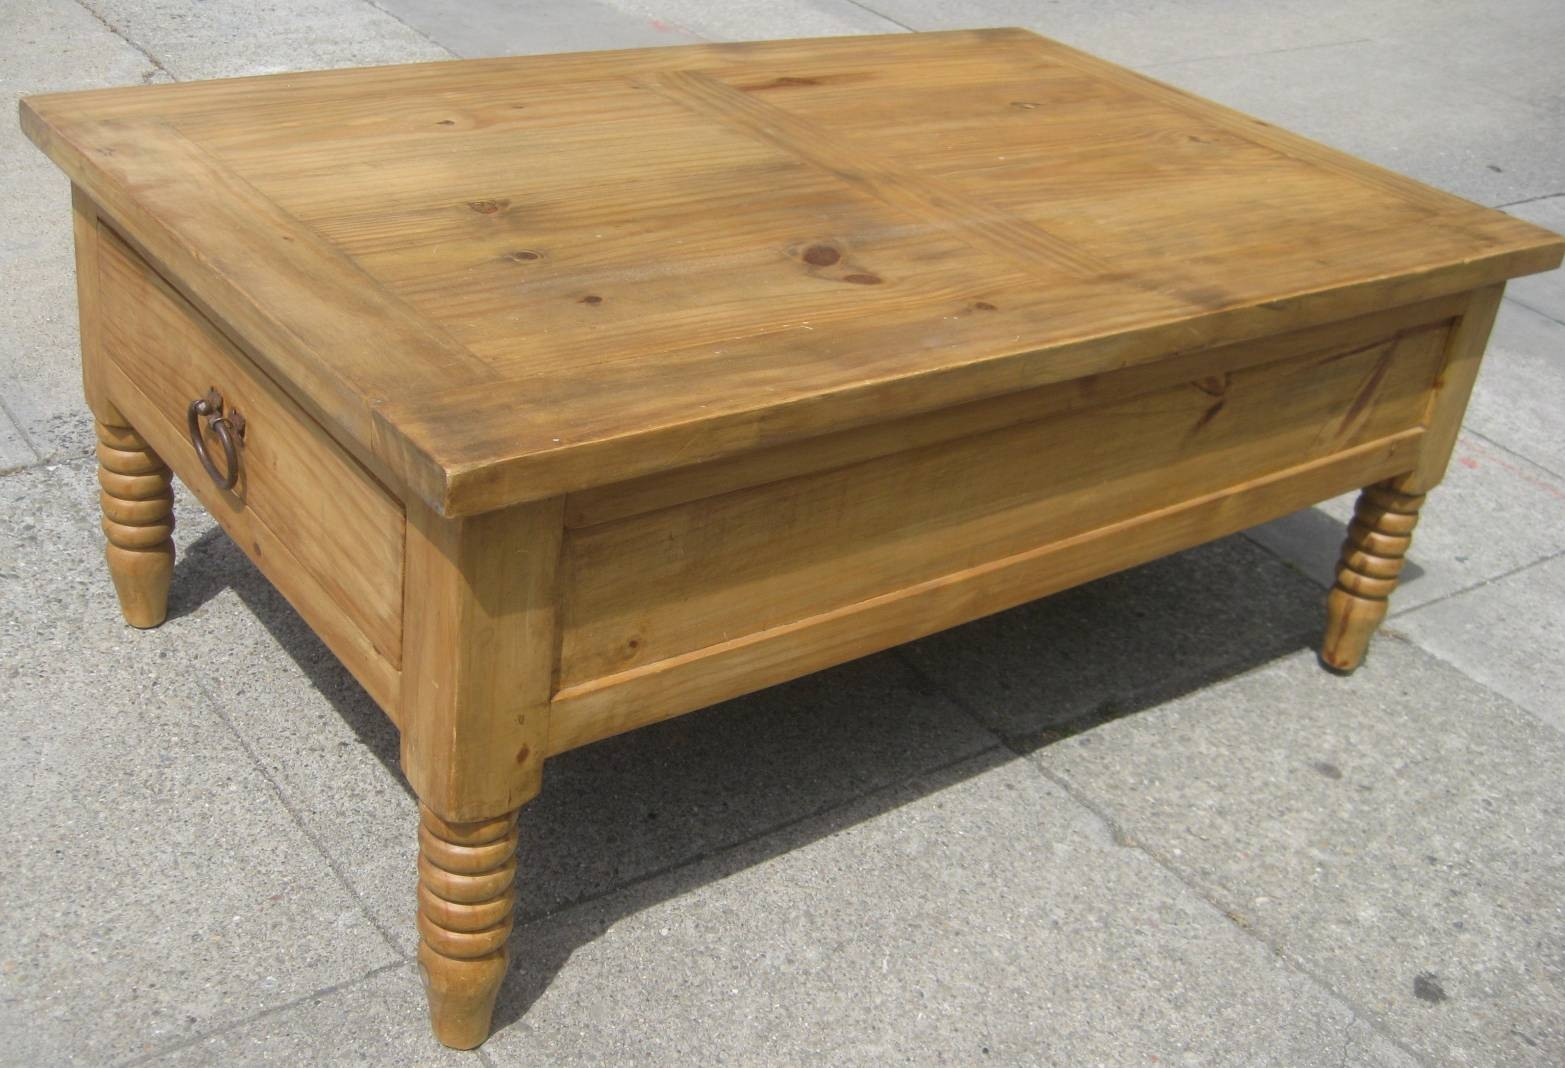 Pine Coffee Tables for Square Pine Coffee Tables (Image 20 of 30)